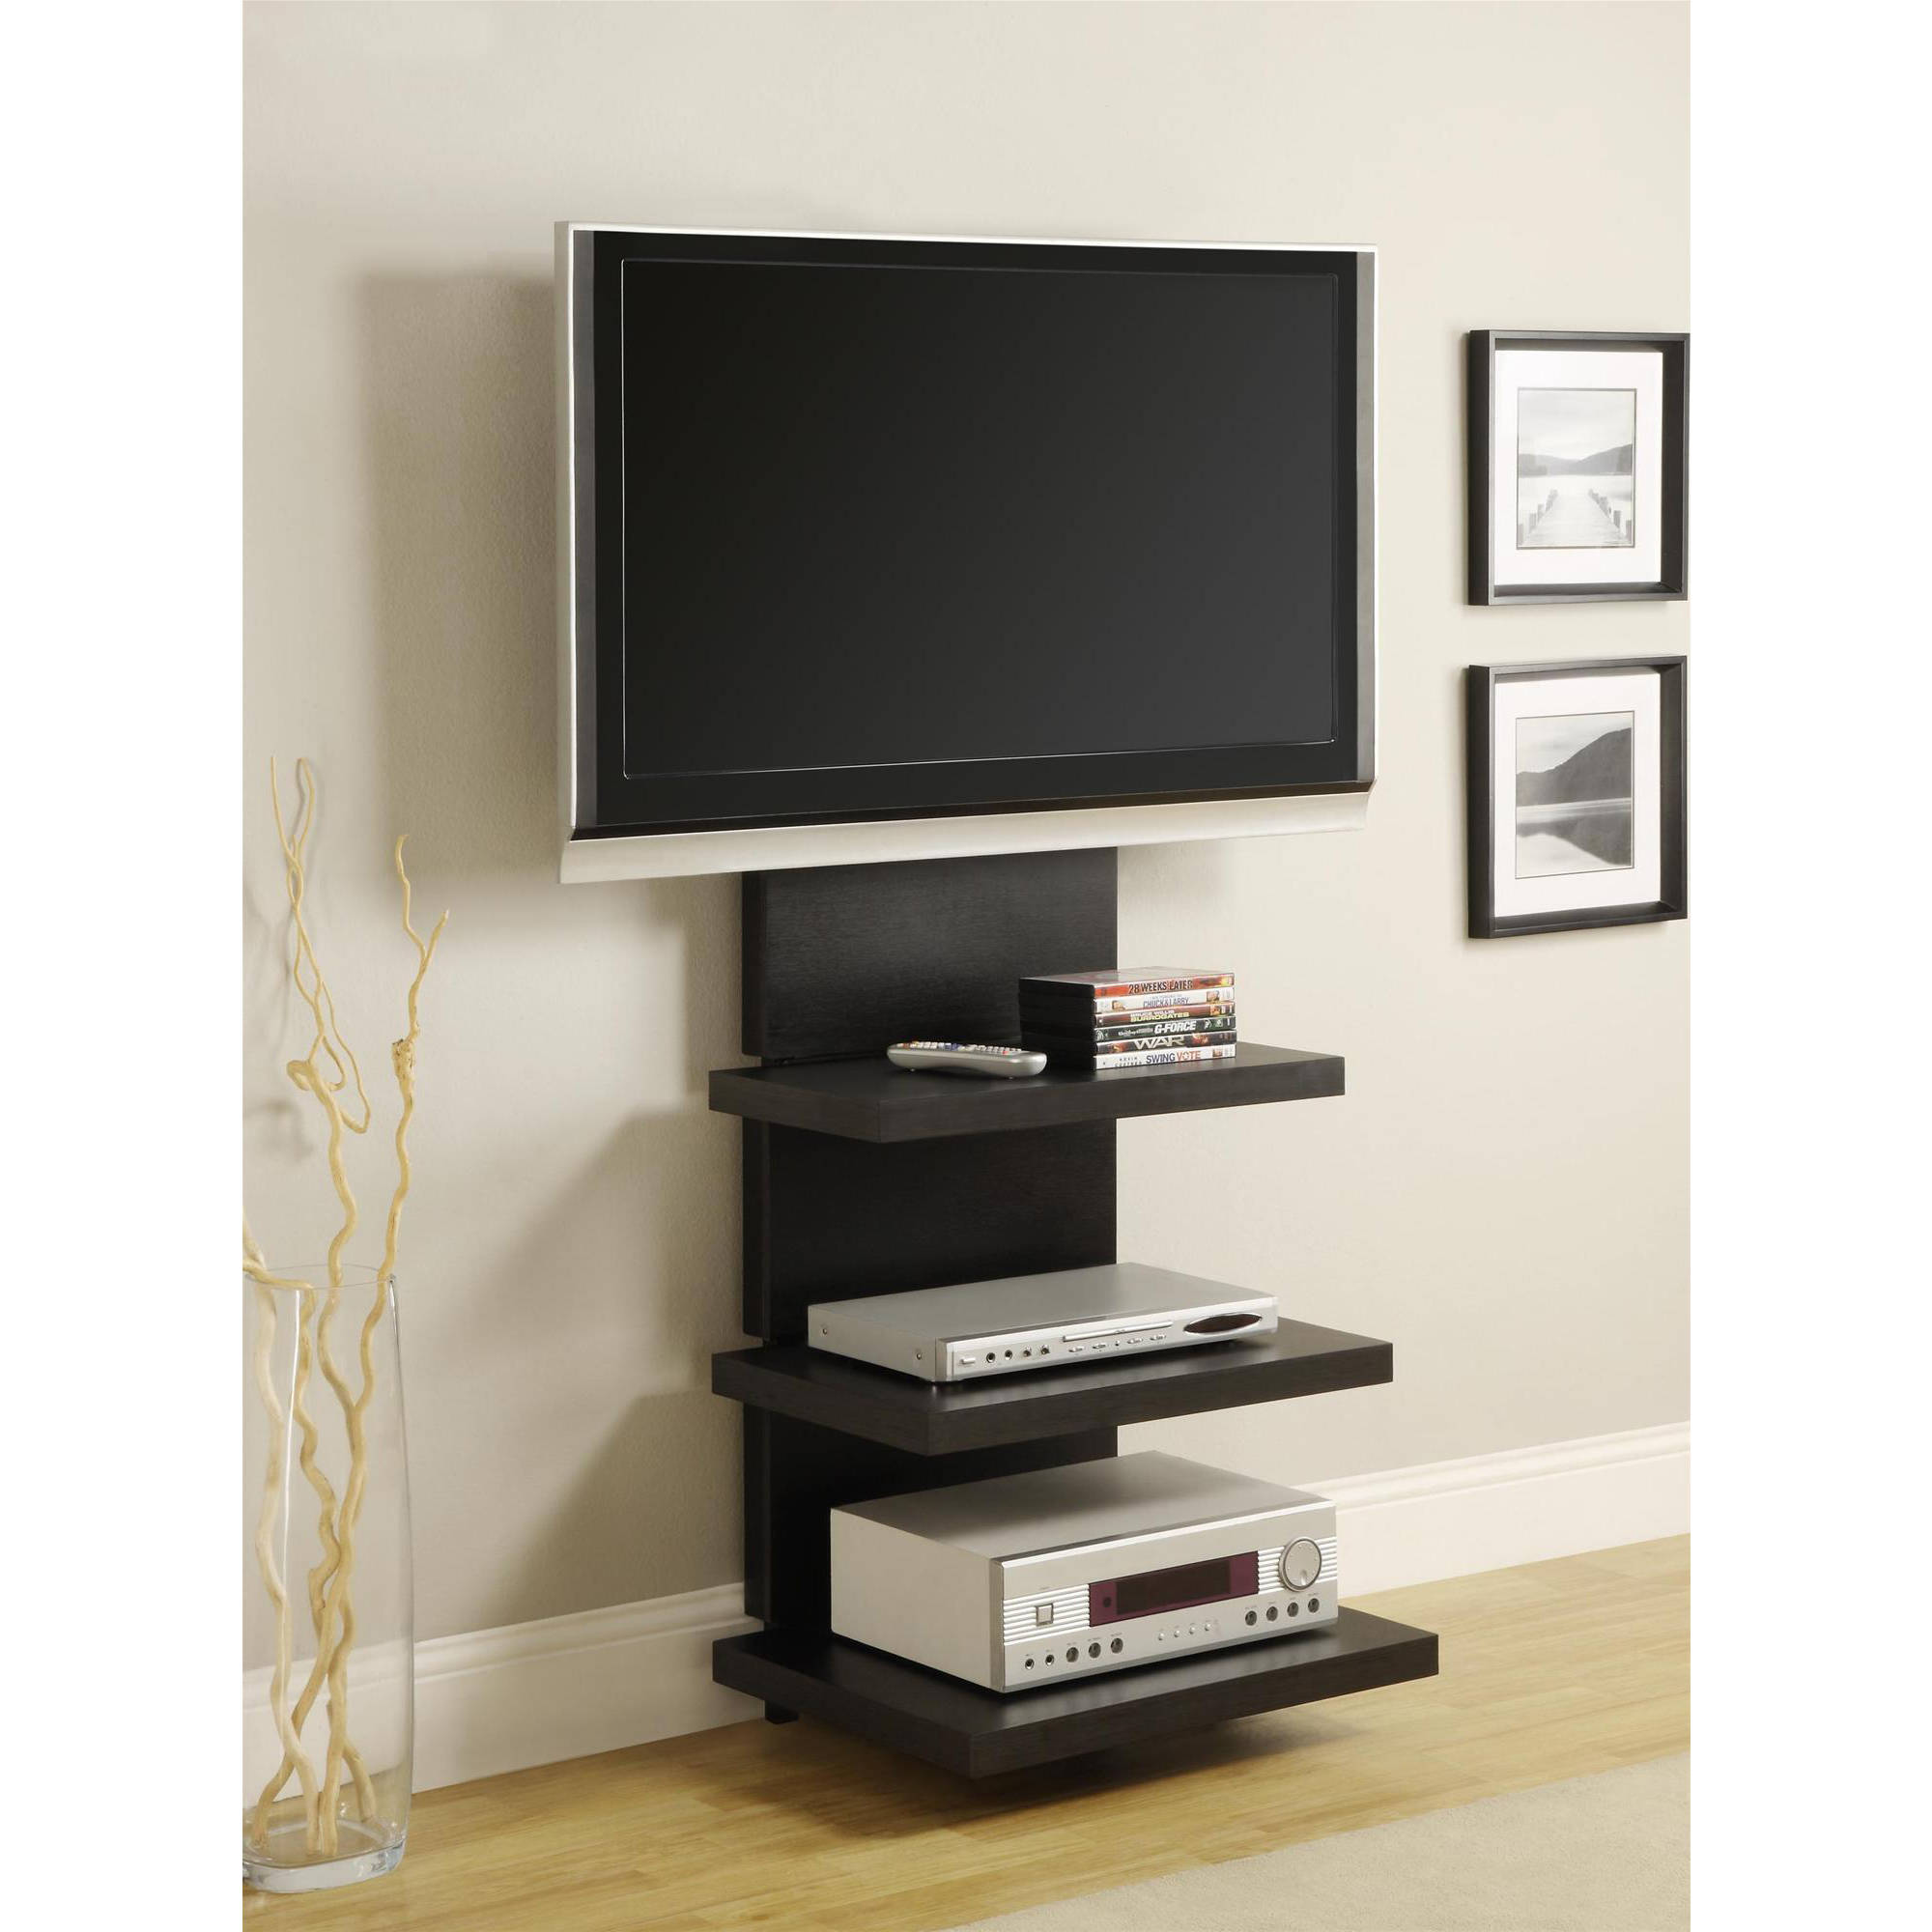 Superbe Image Is Loading Altra Wall Mount TV Stand With 3 Shelves